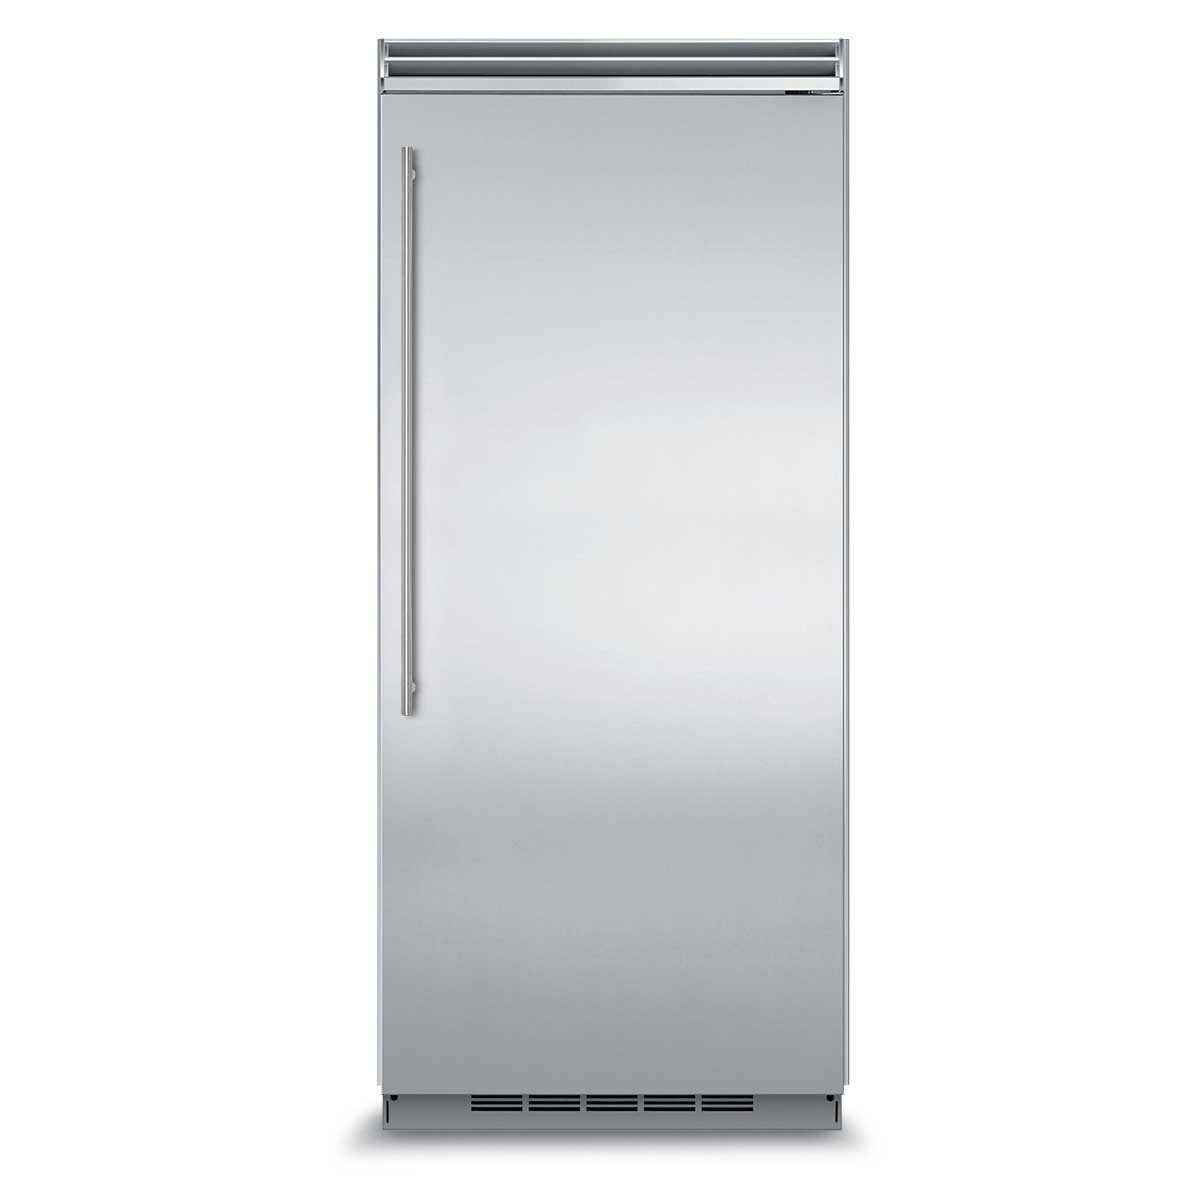 "Marvel  Marvel Professional Built-In 36"" All Refrigerator- Solid Stainless Steel Door   Left Hinge, Slim Designer Handle"